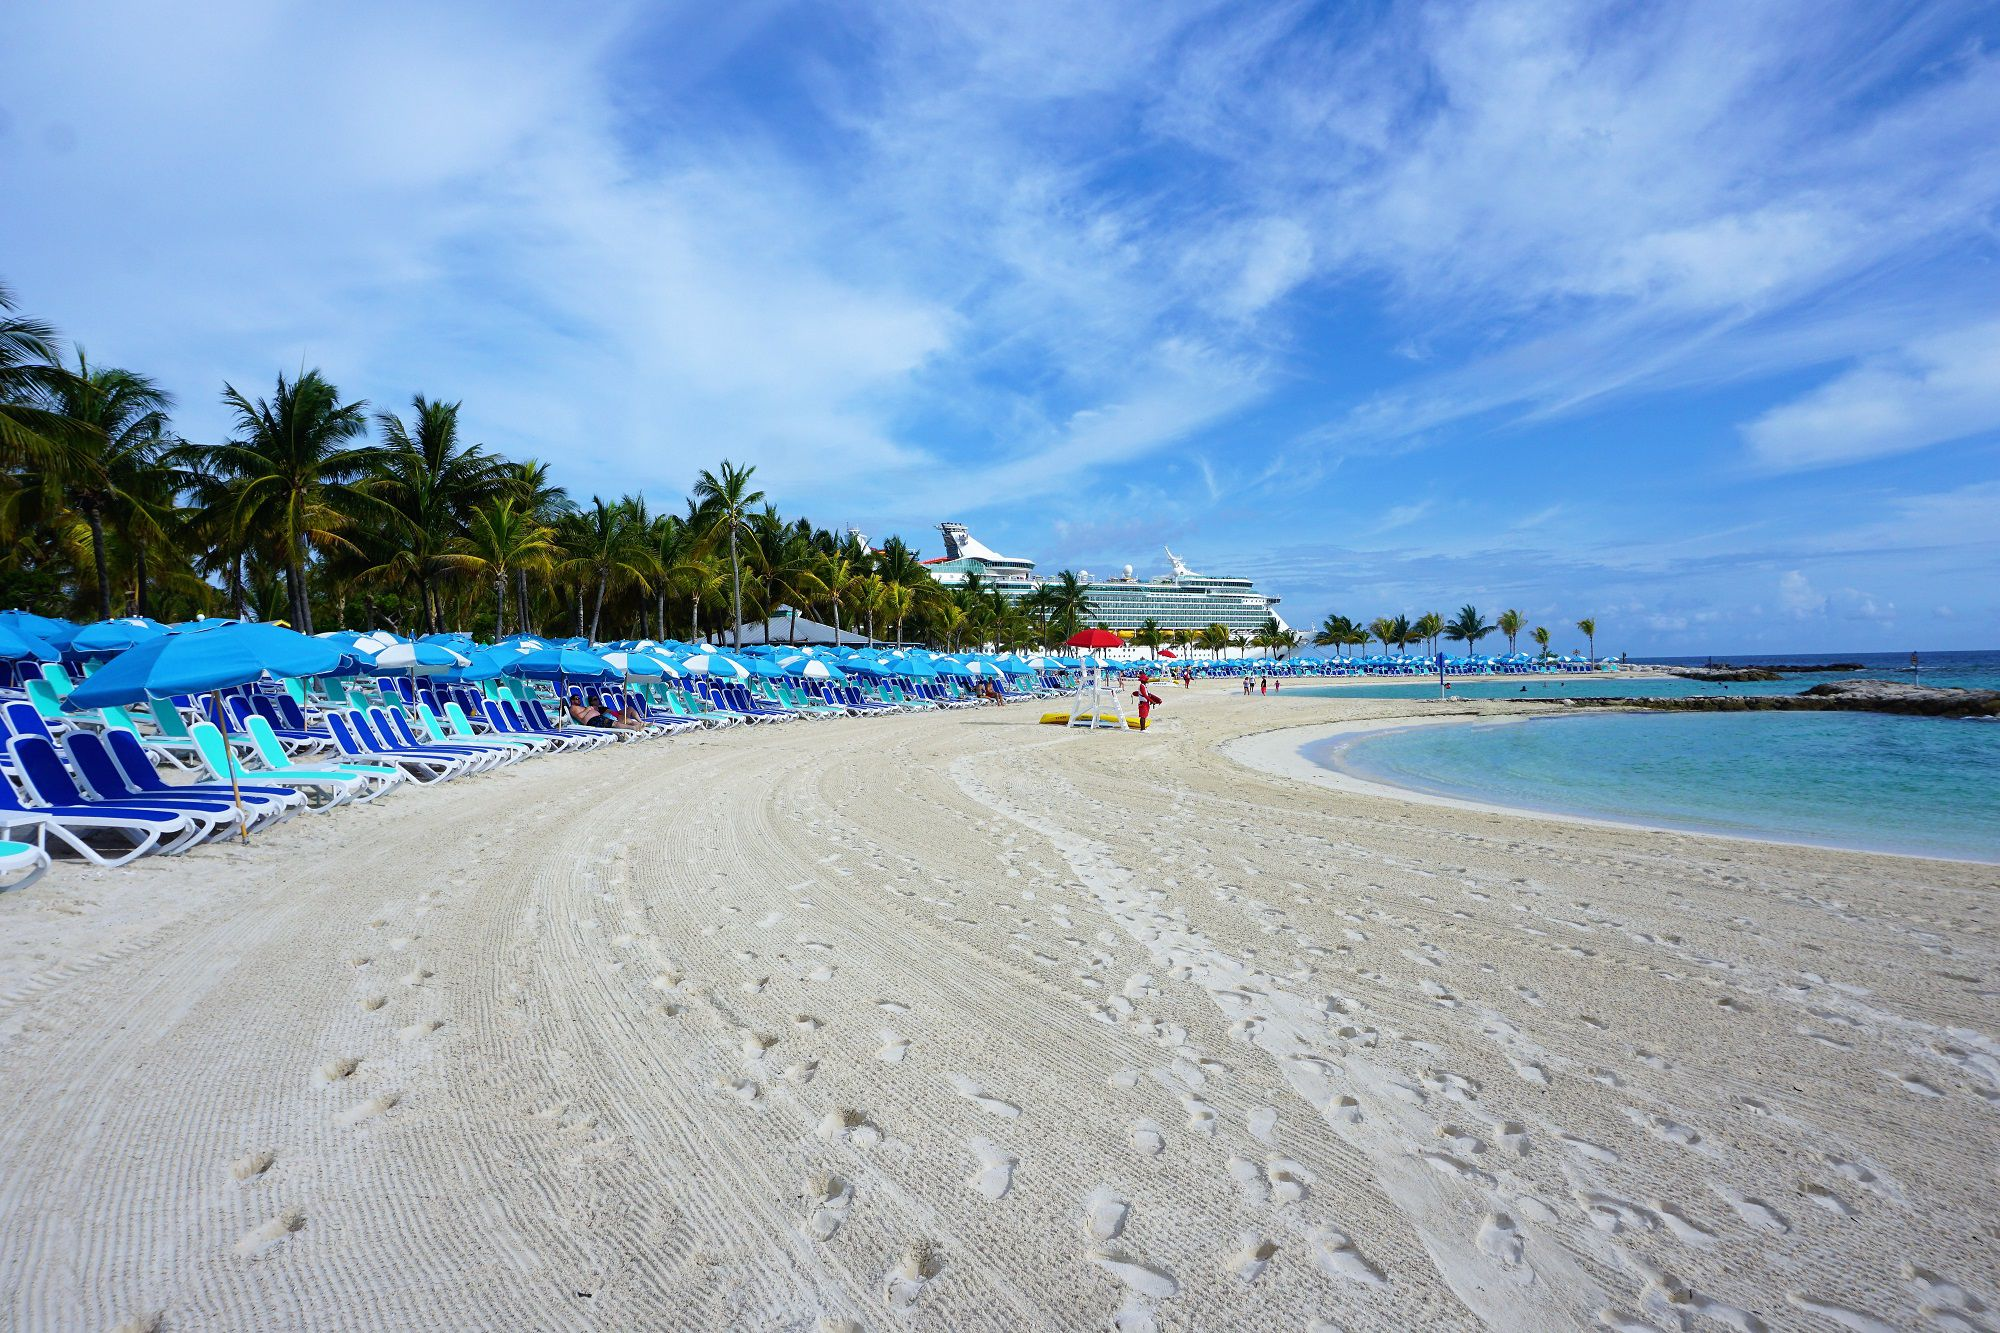 Chill Beach Perfect Day at CocoCay